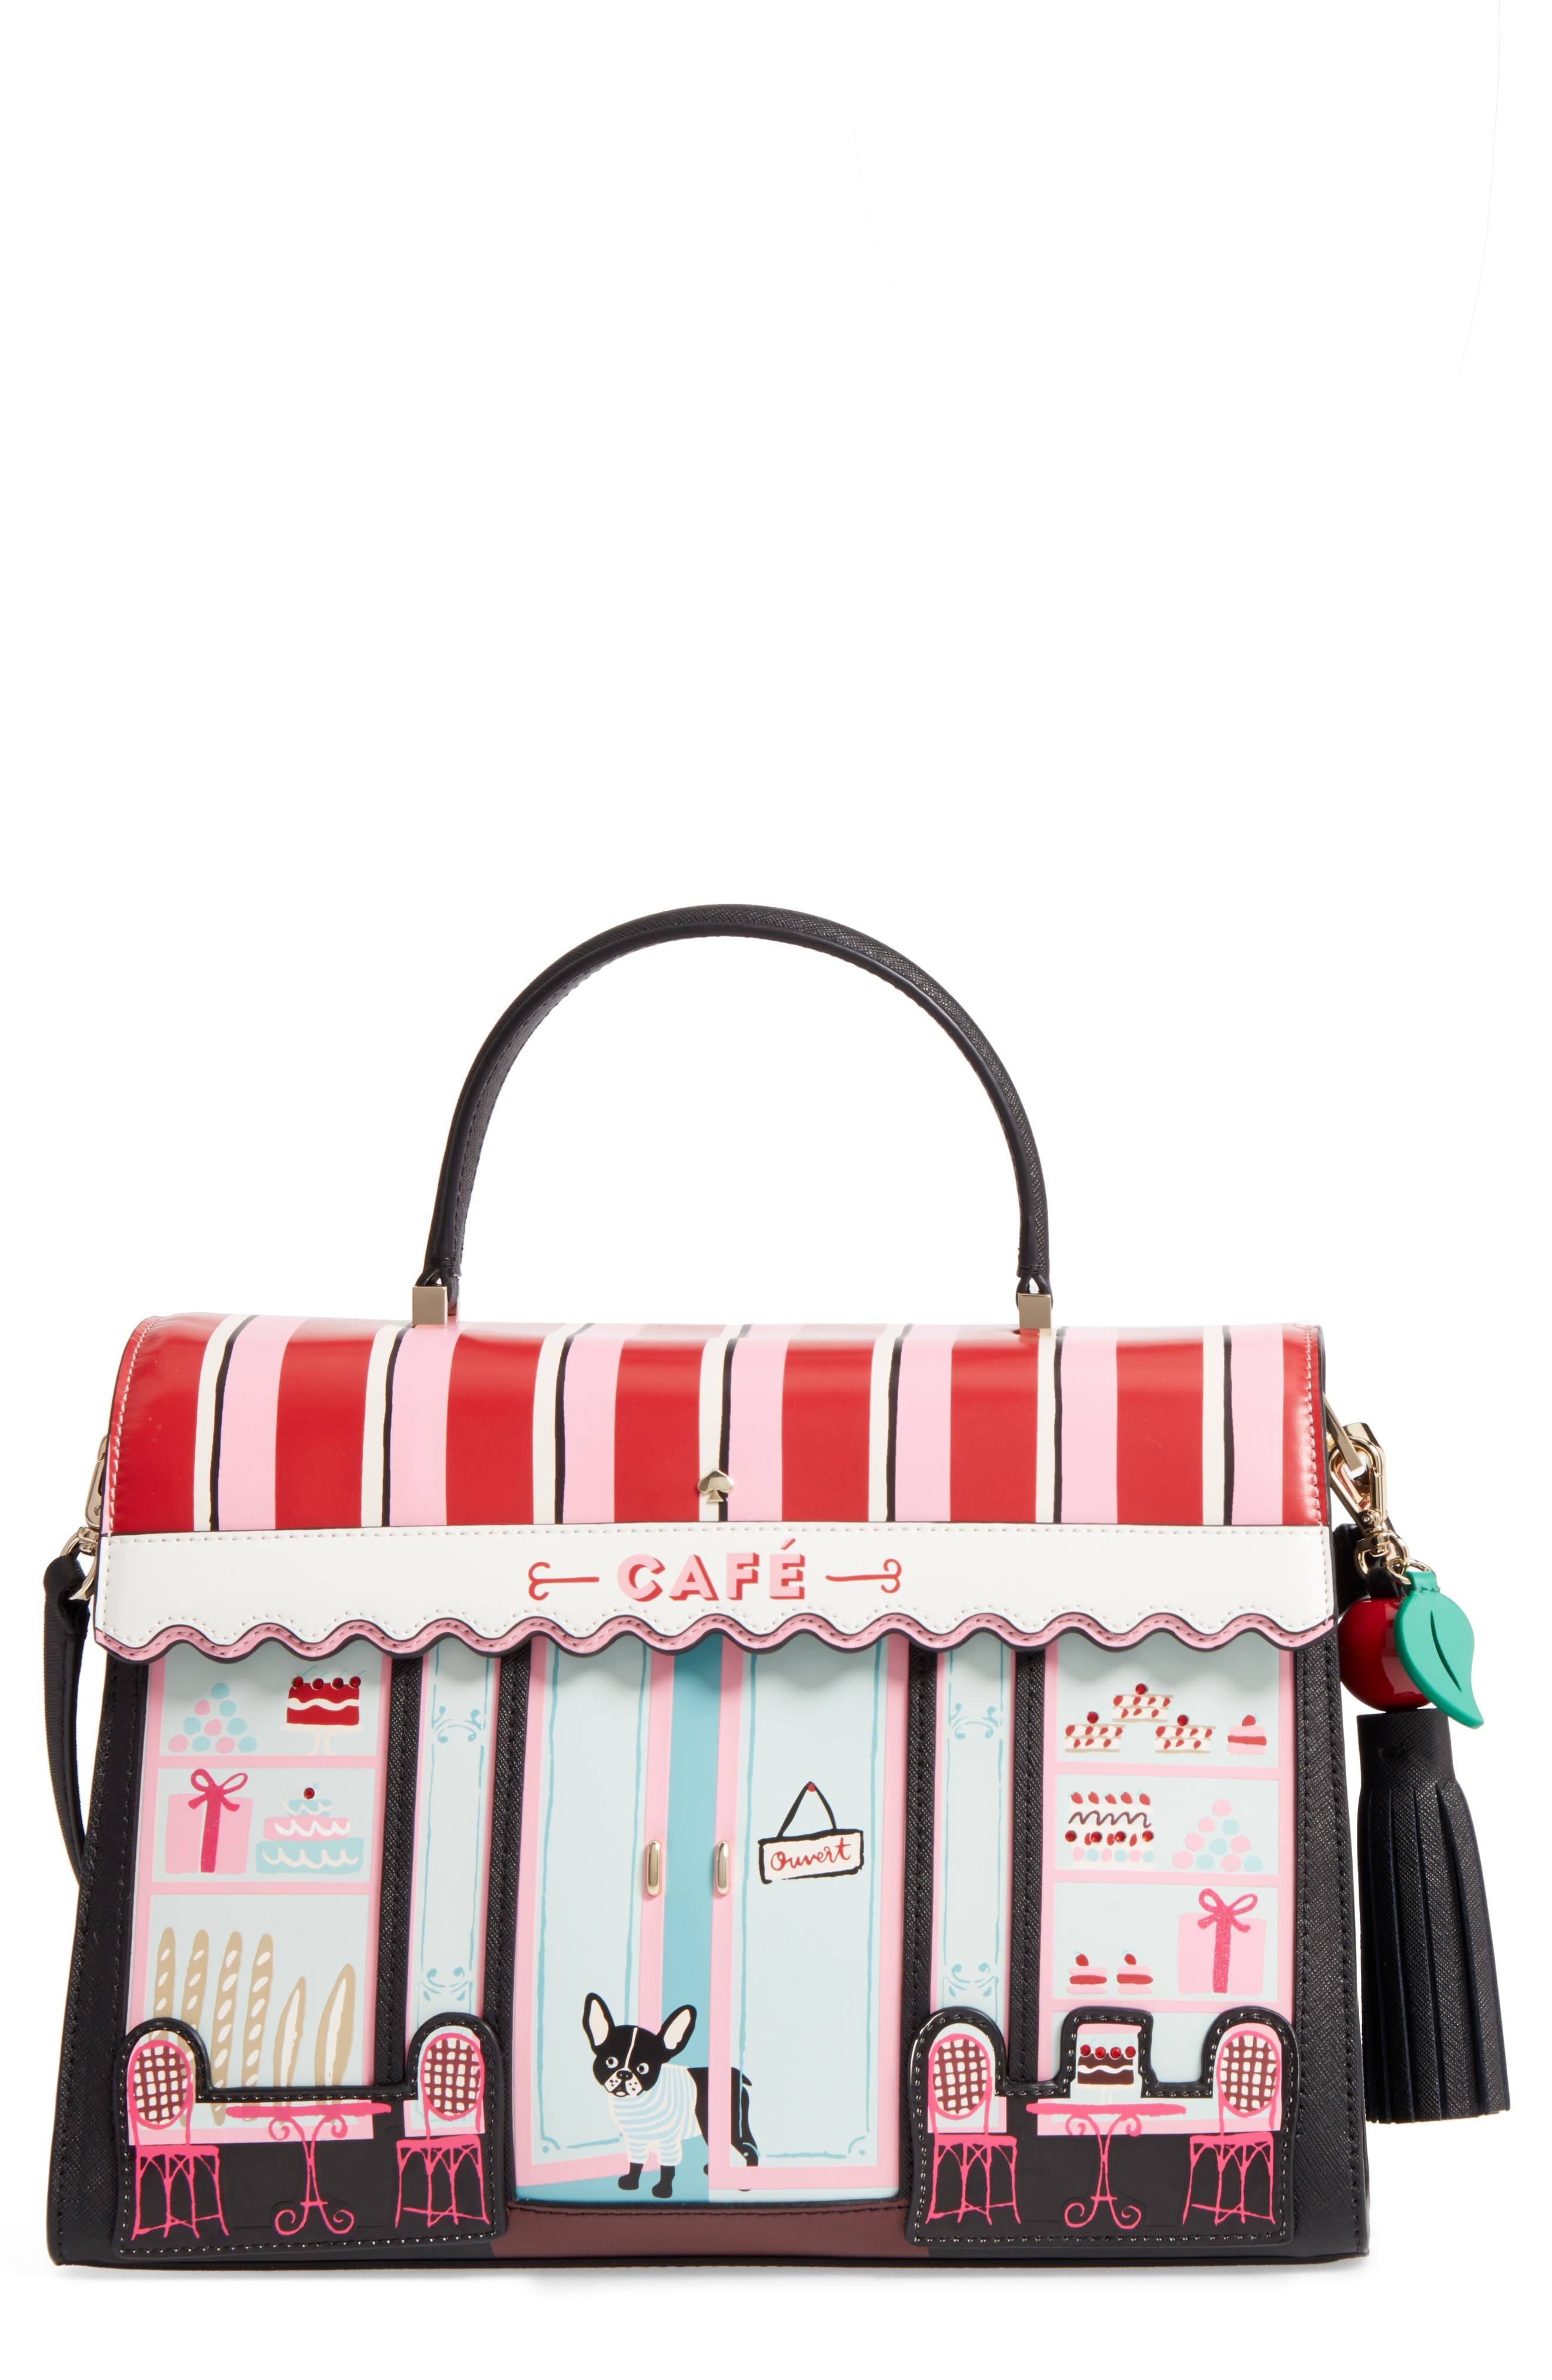 KATE SPADE NEW YORK ma cherie - café leather satchel, Main, color, 001